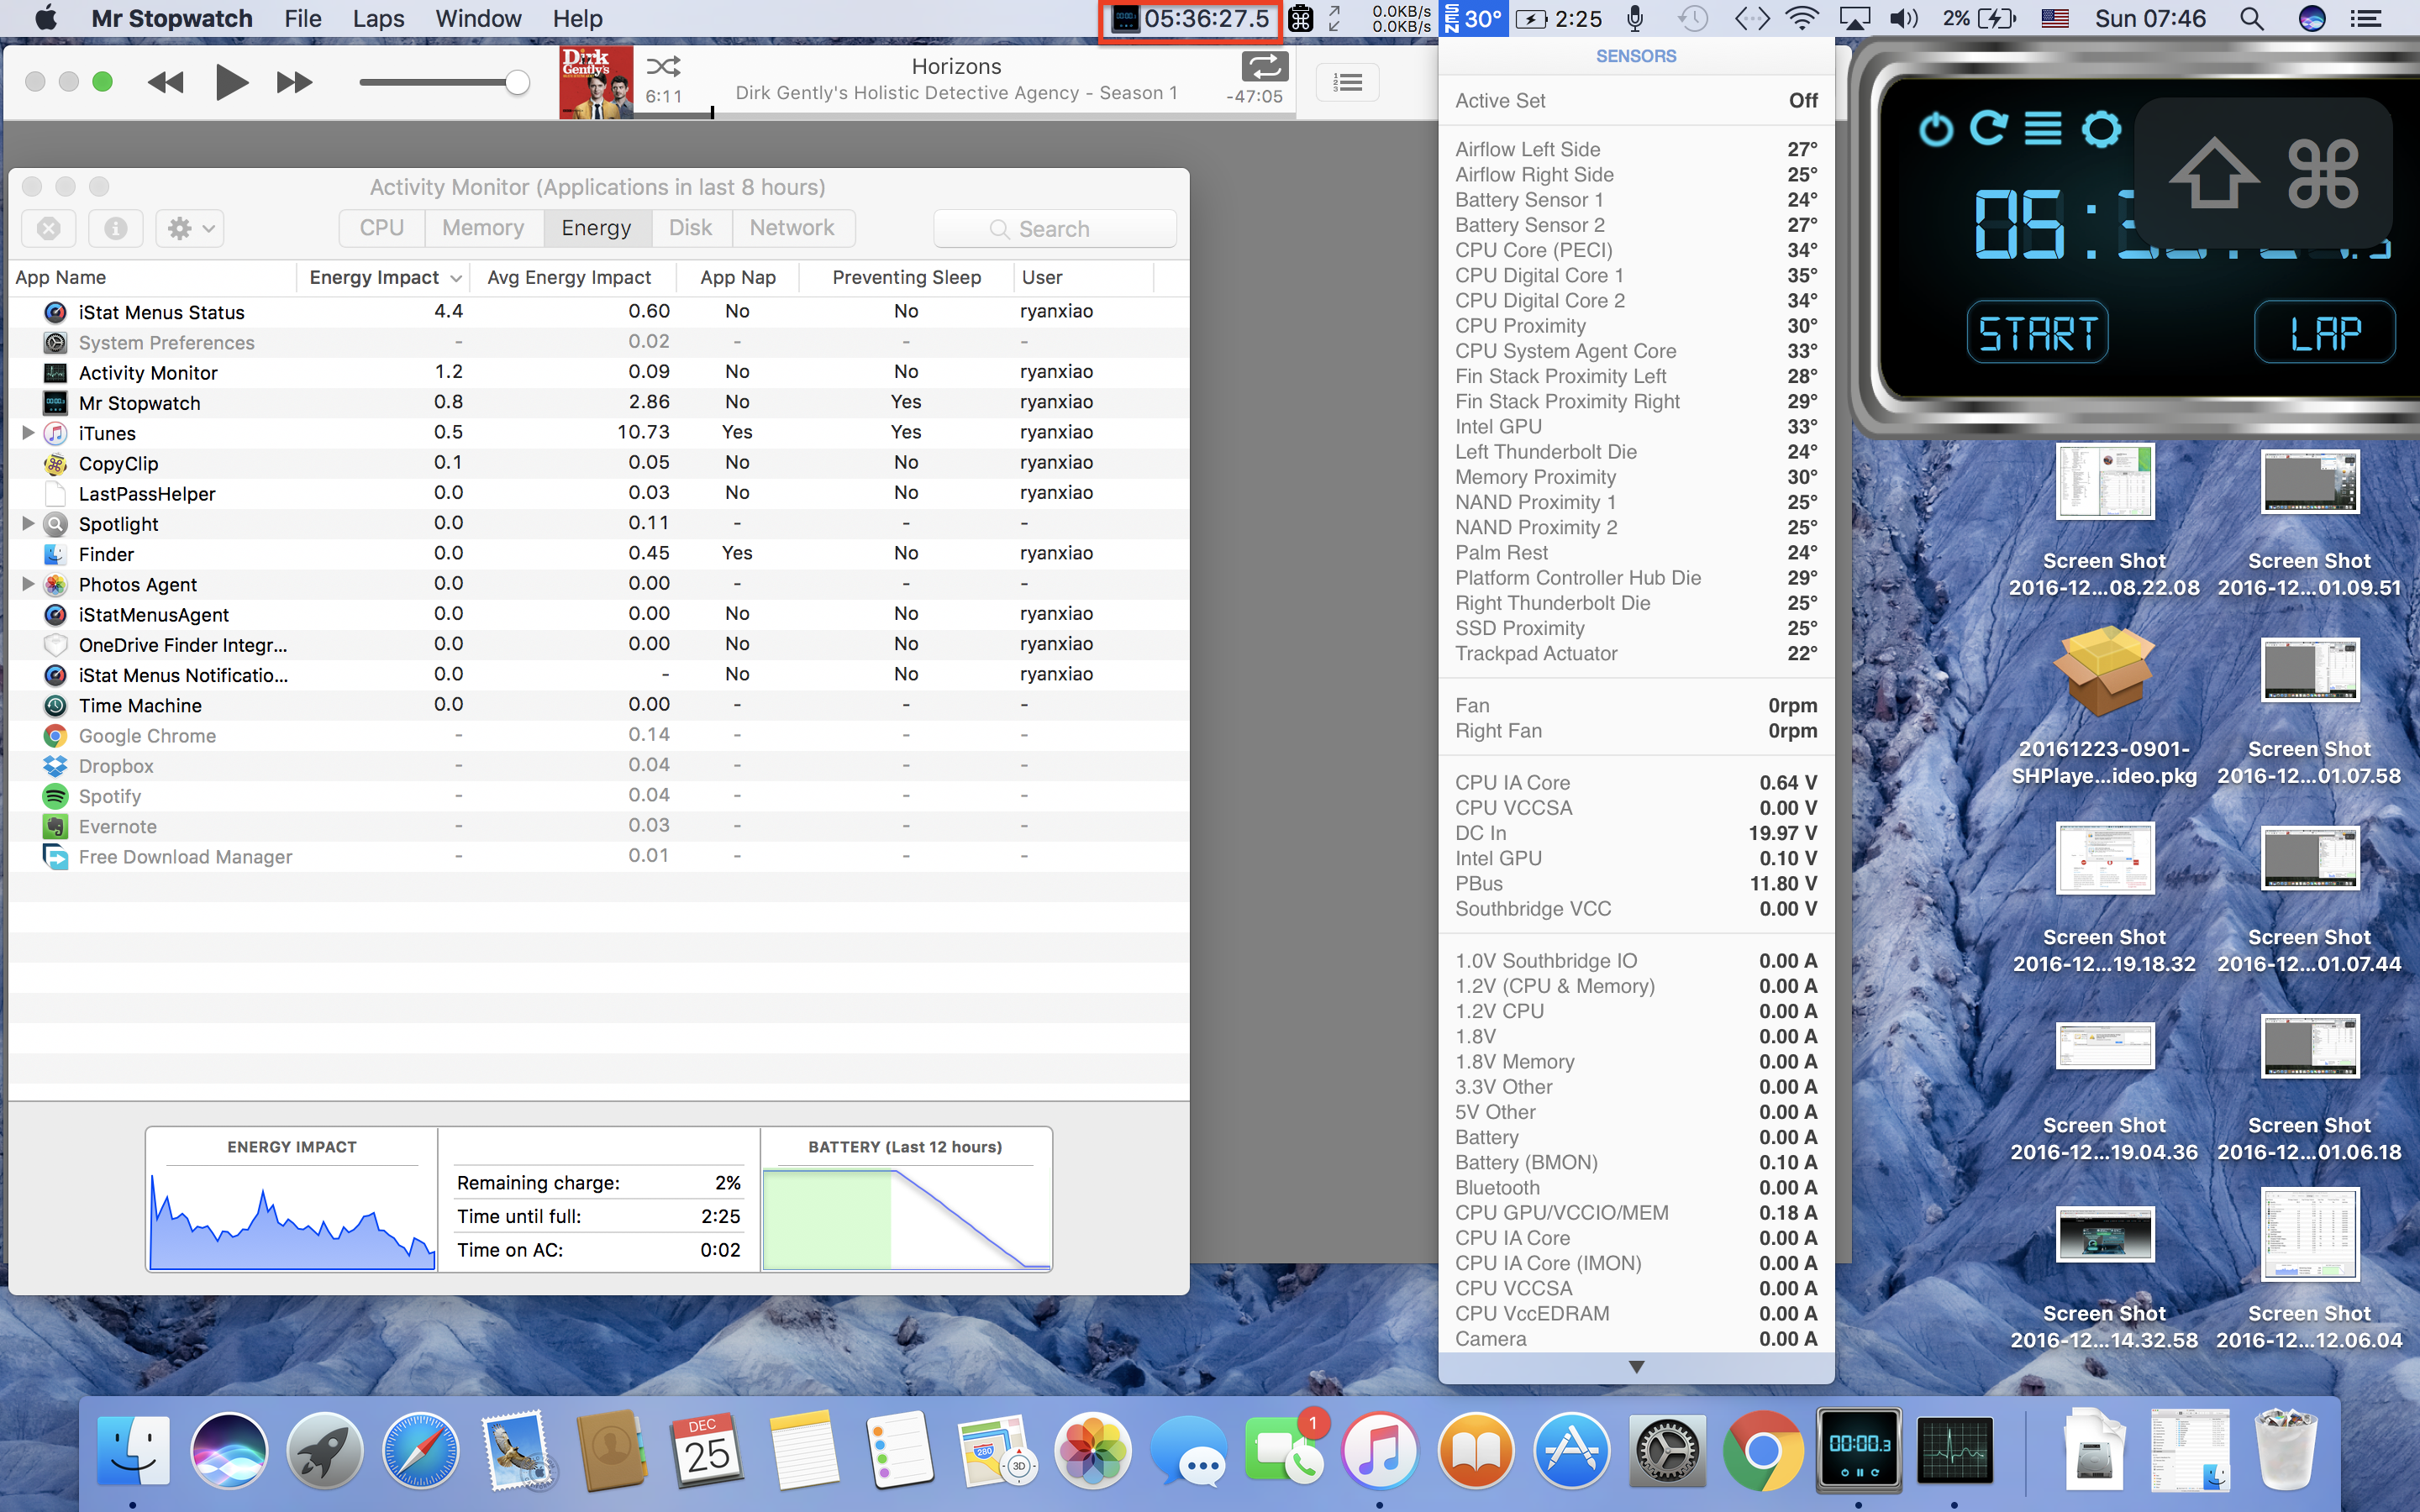 Screen Shot 2016-12-25 at 07.46.37-mbp tb battery test result.png